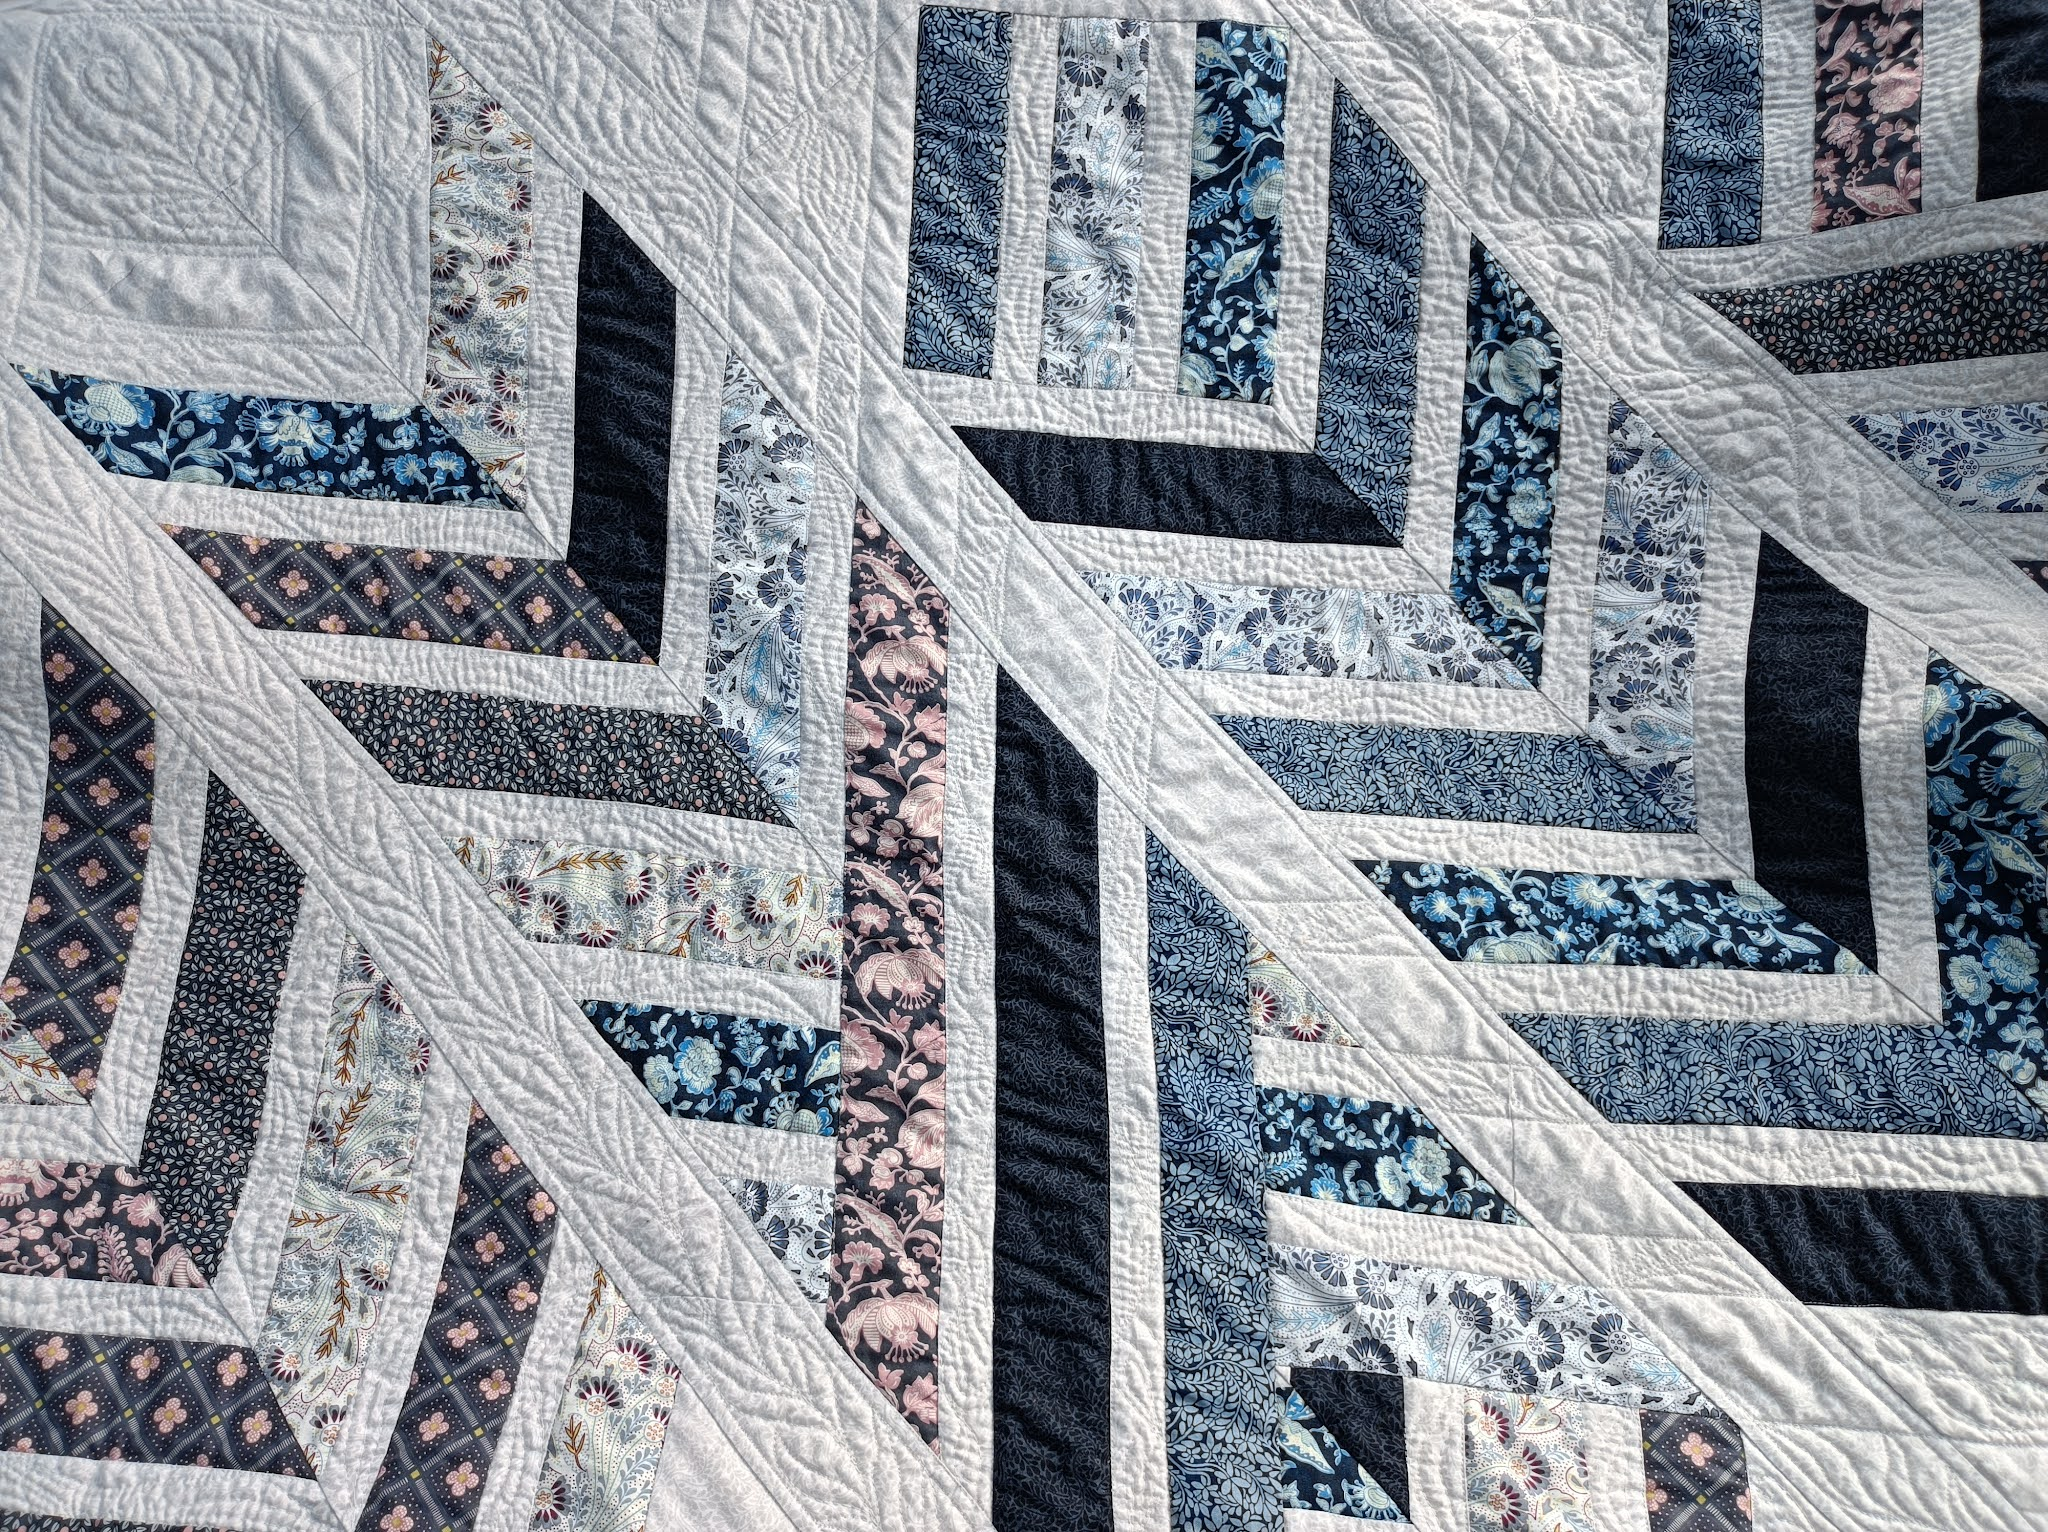 Sewing a large quilt on a regular sewing machine as a beginner, including the Feathered Arrows quilting pattern review